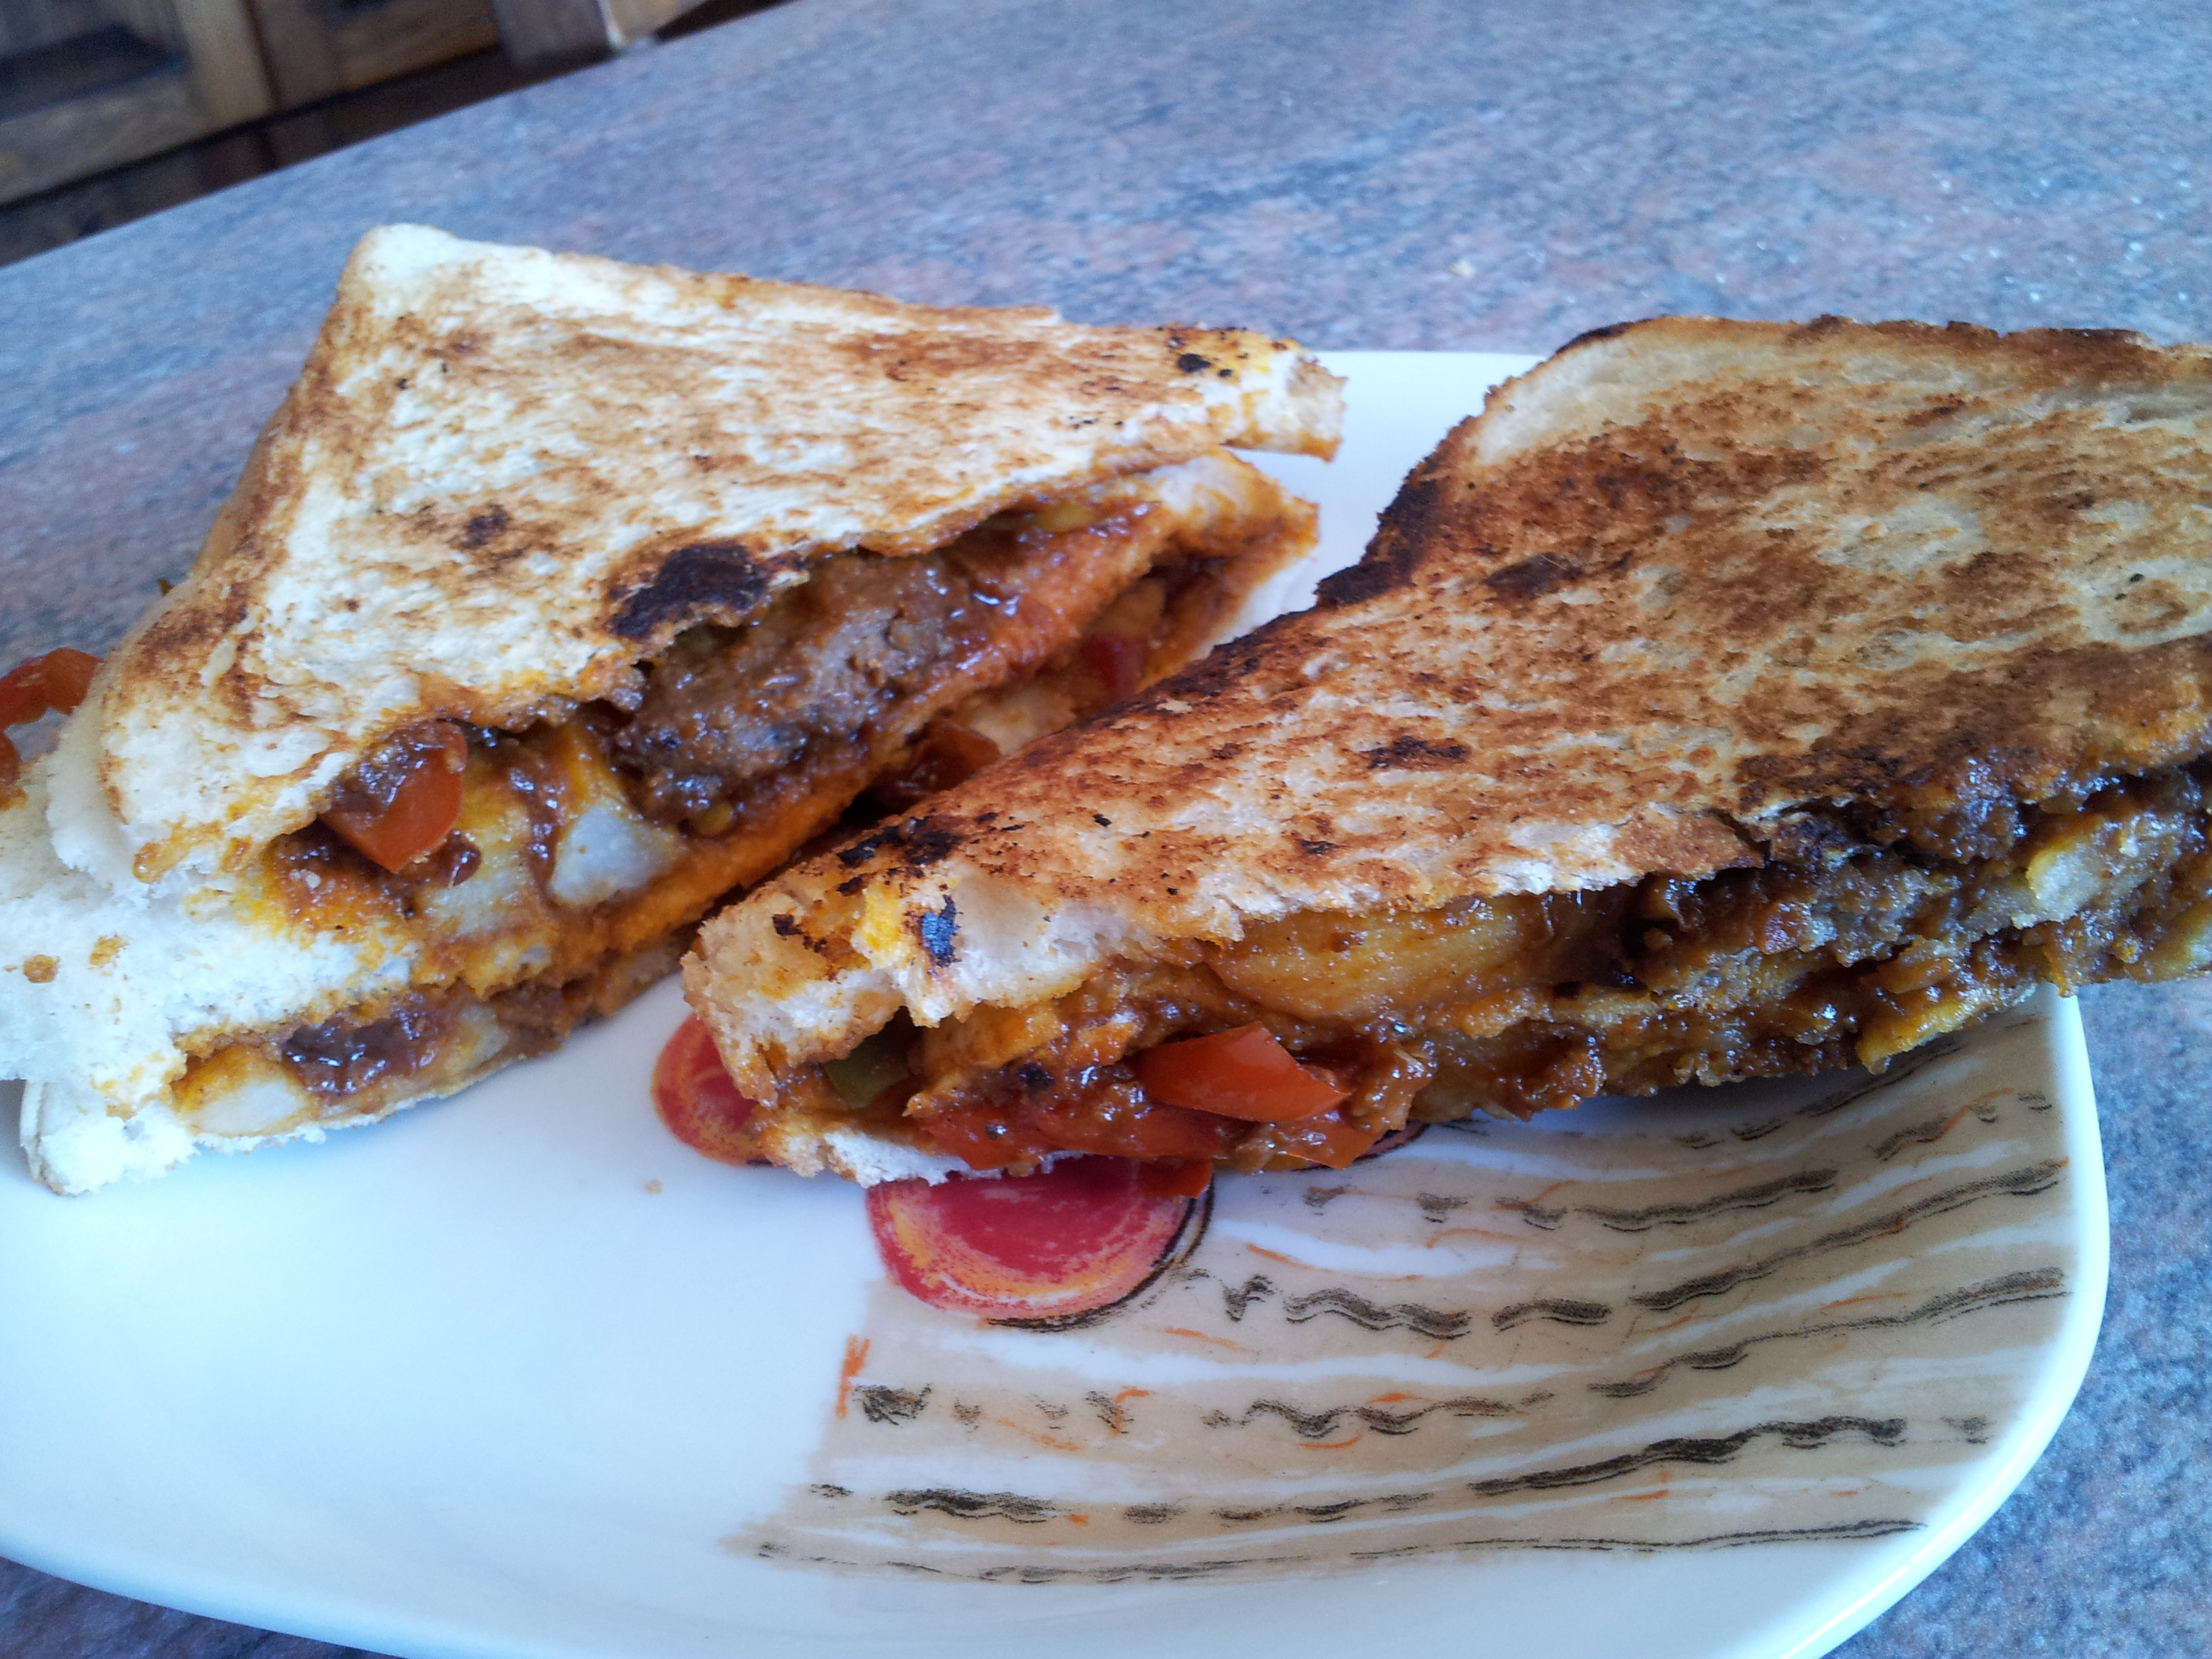 Real Nanima – Saucy Toasted steak sandwich